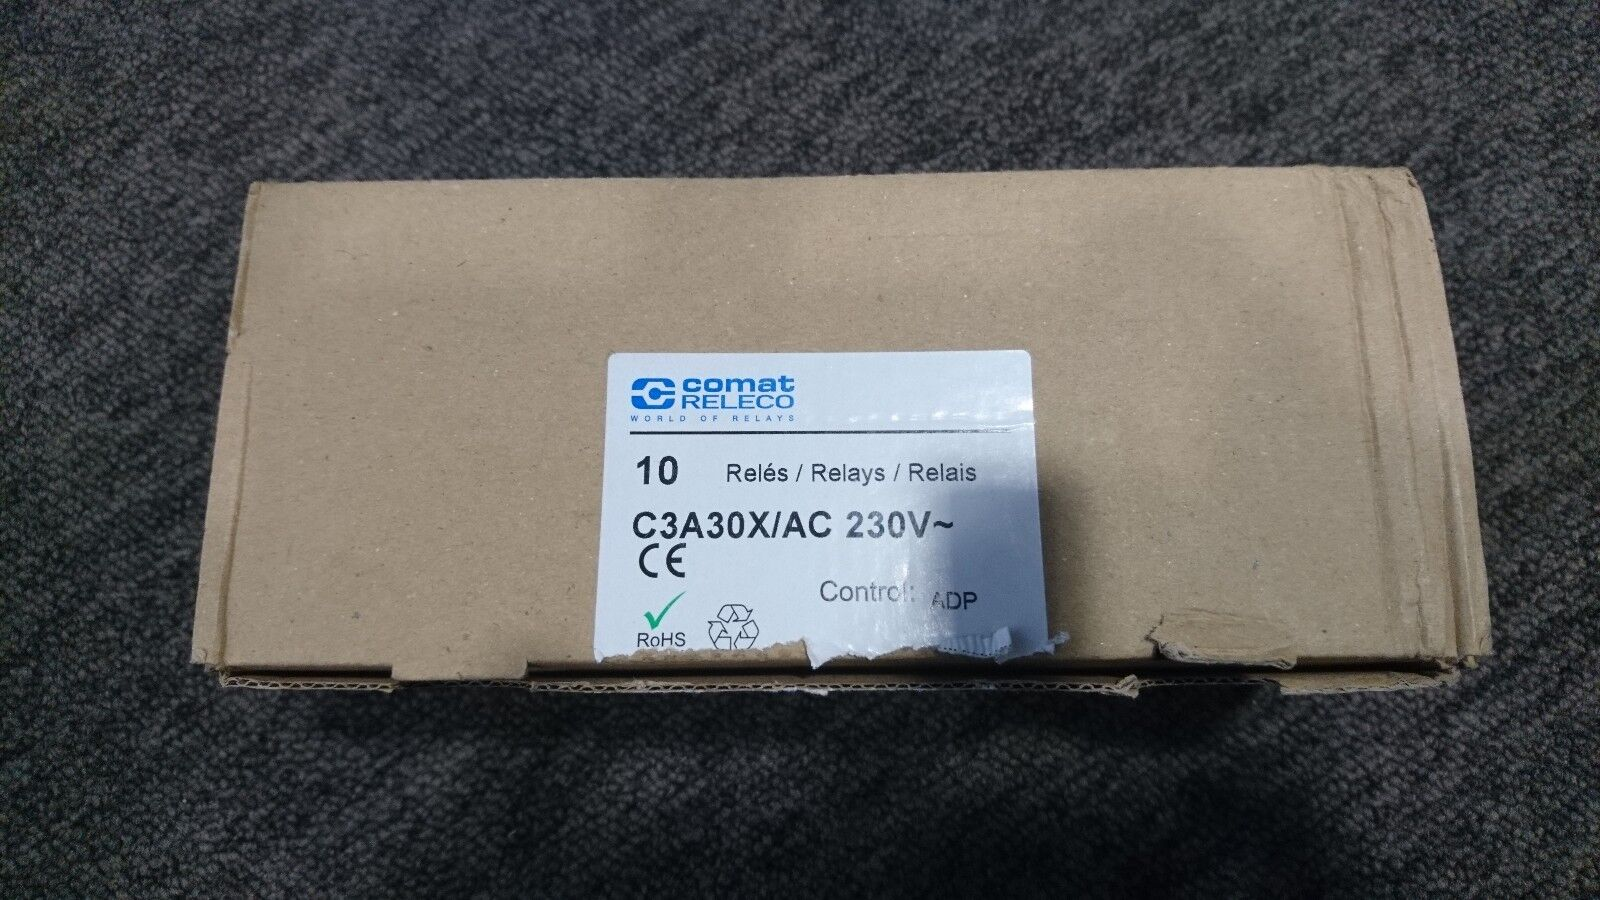 Releco Relay C3a30x Ac 230v 1 Pcs Ebay Solid State Norton Secured Powered By Verisign